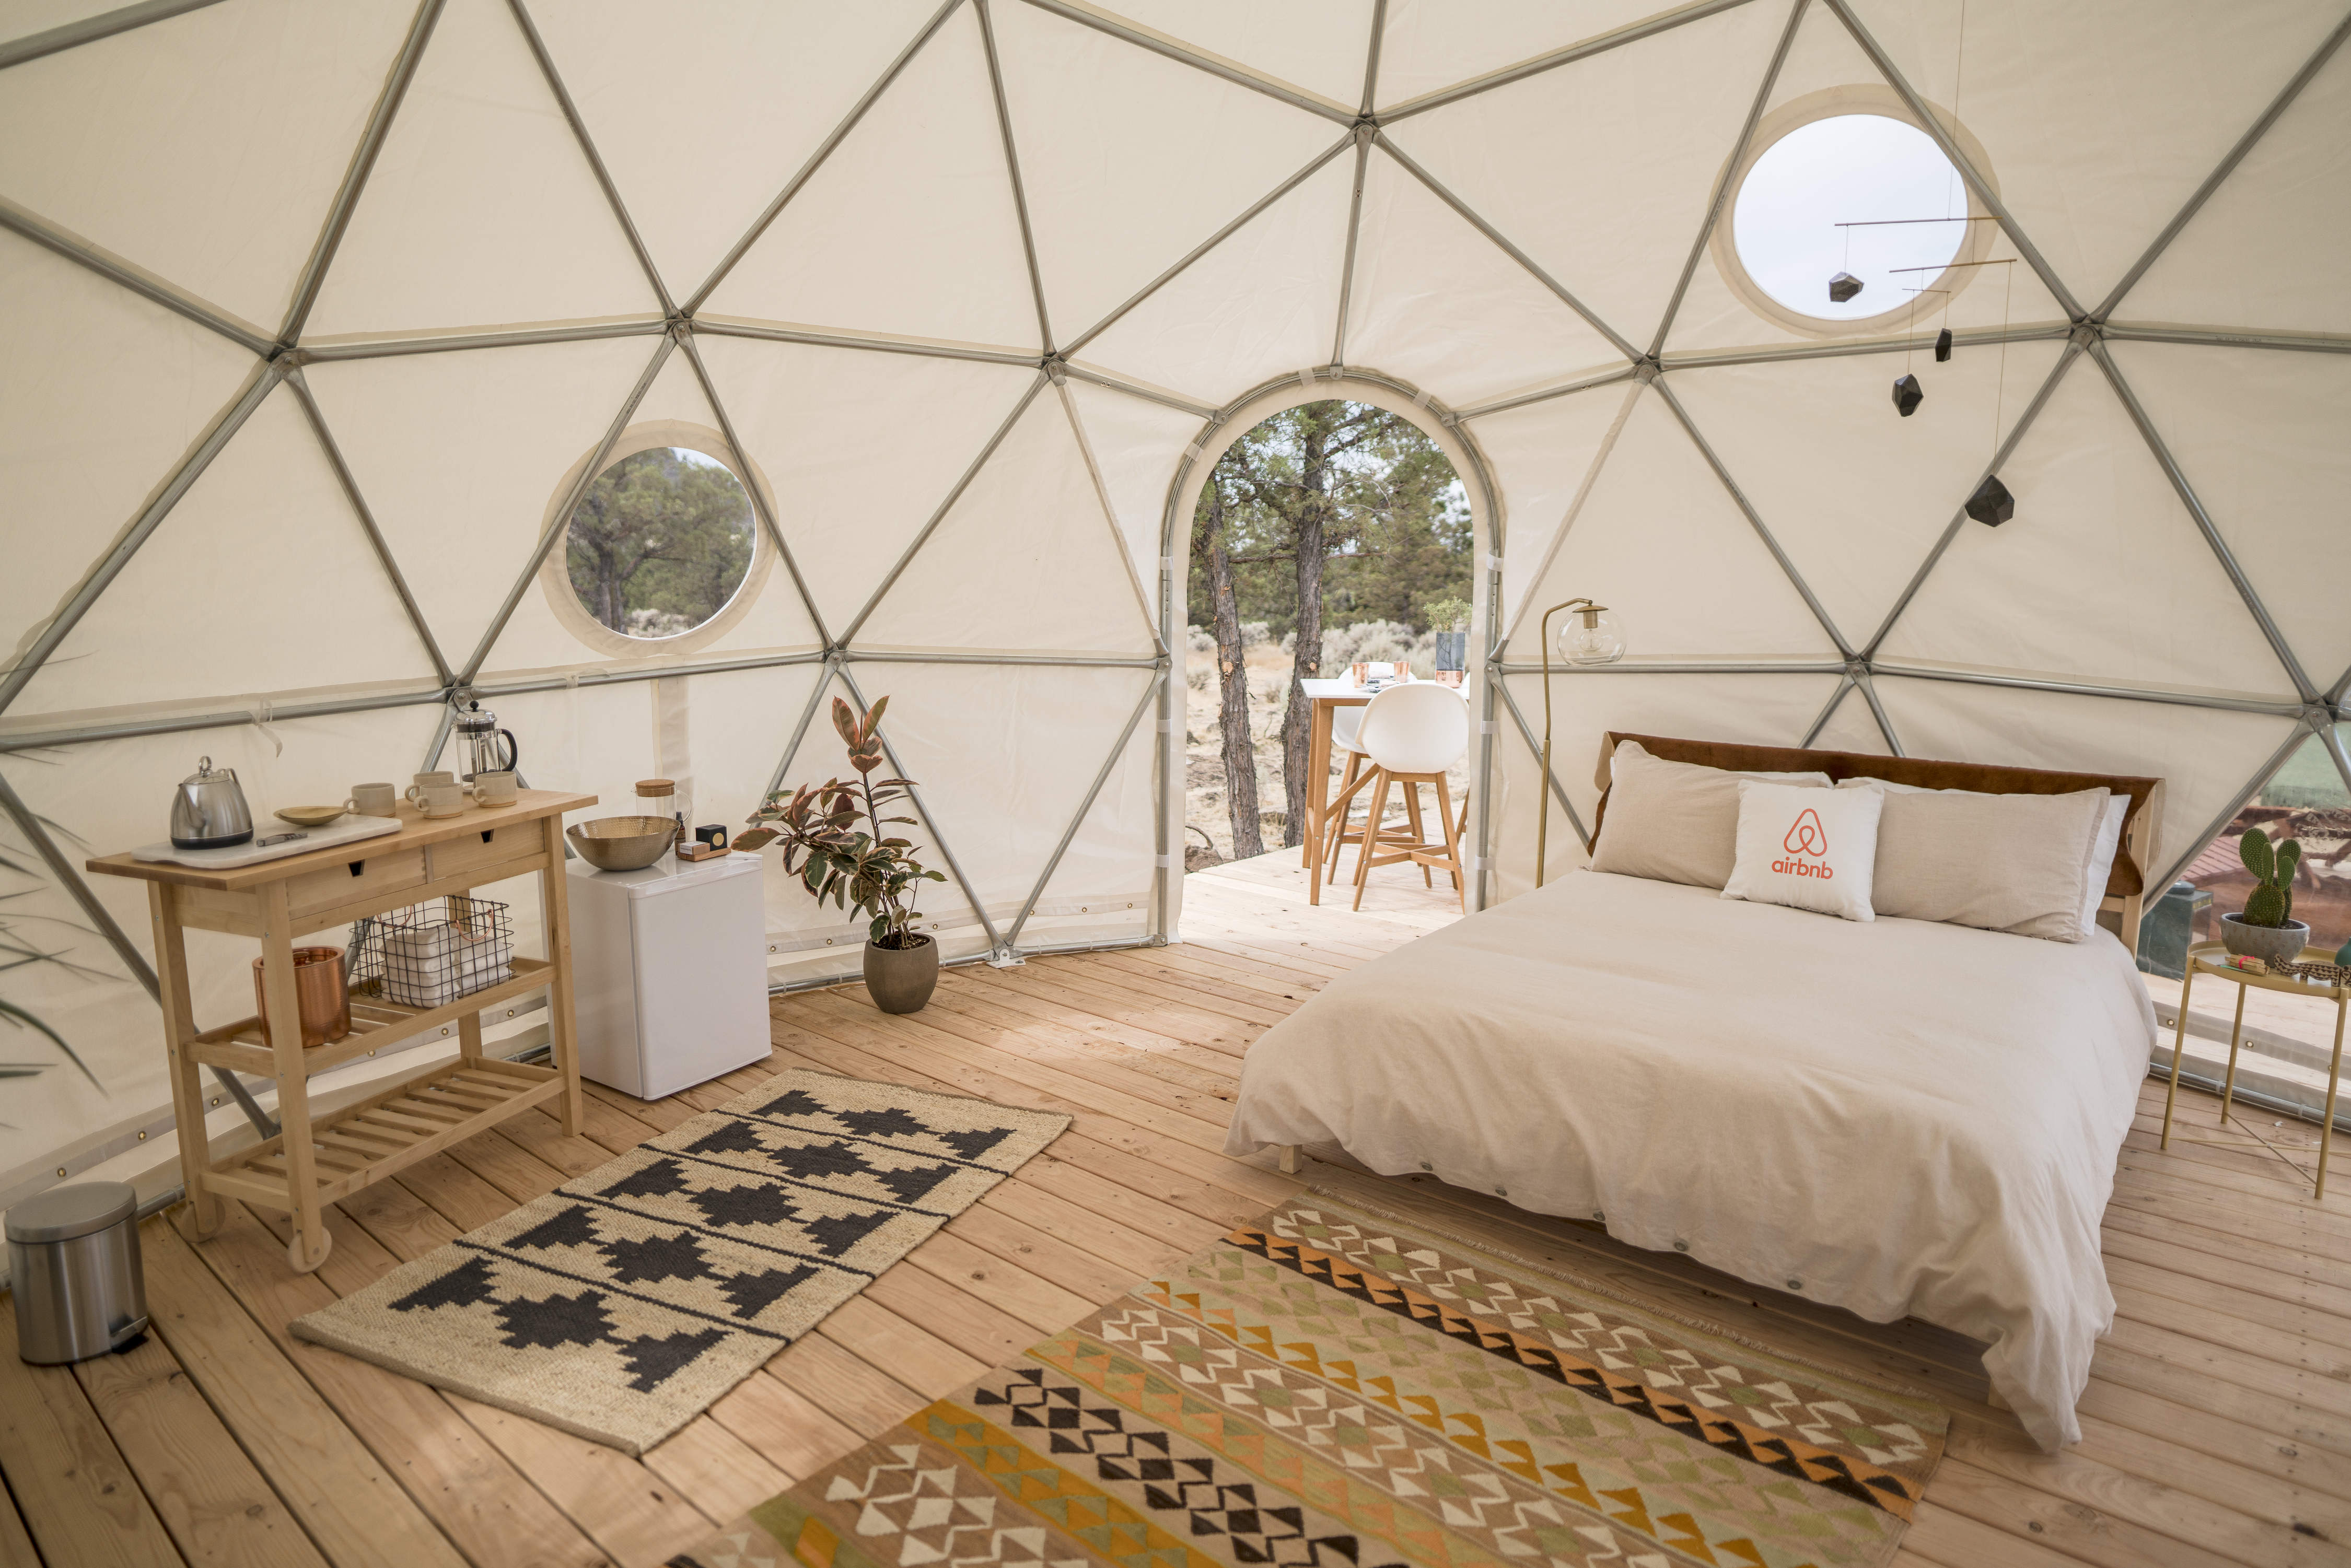 The interior of a geodesic dome in Orgeon as part of the airbnb us solar eclipse competition